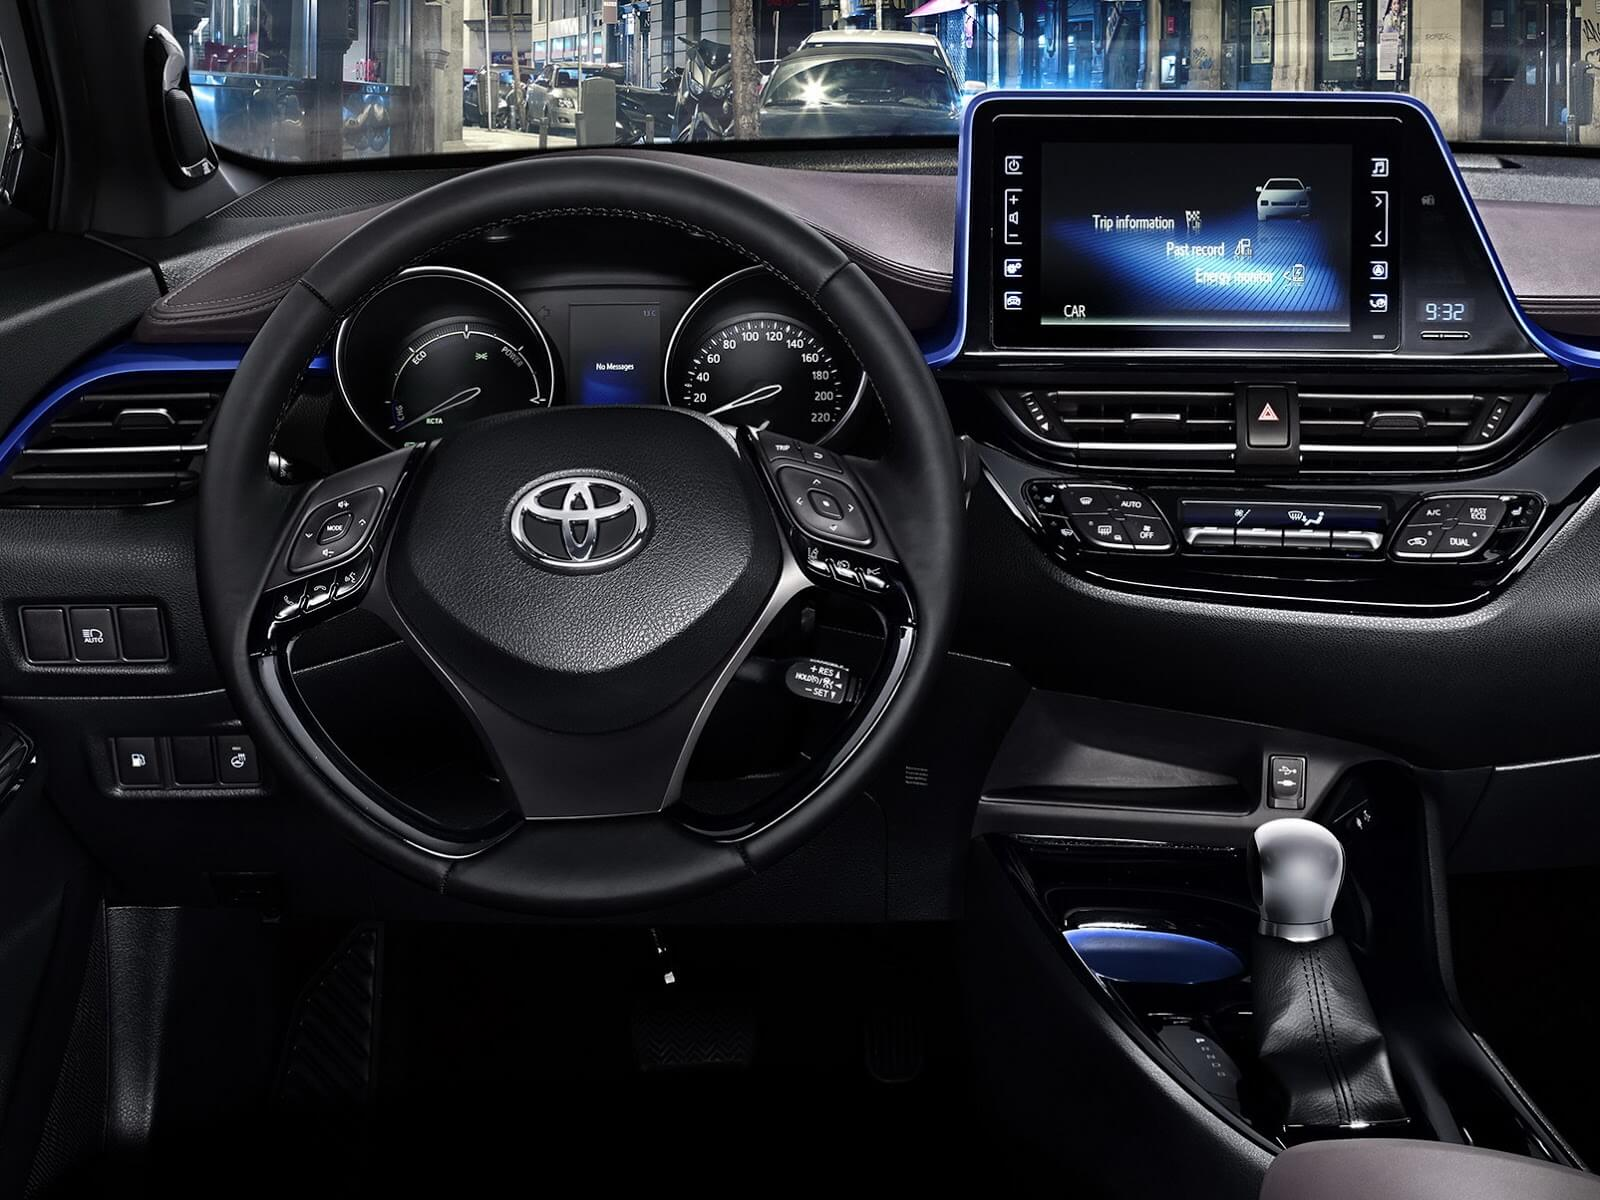 Compare the kia forte5, mazda mazdaspeed 3, and toyota corolla im side by side to see differences in performance, pricing, features and more Blue Chilli Cars: The Brand New Toyota CH-R Crossover